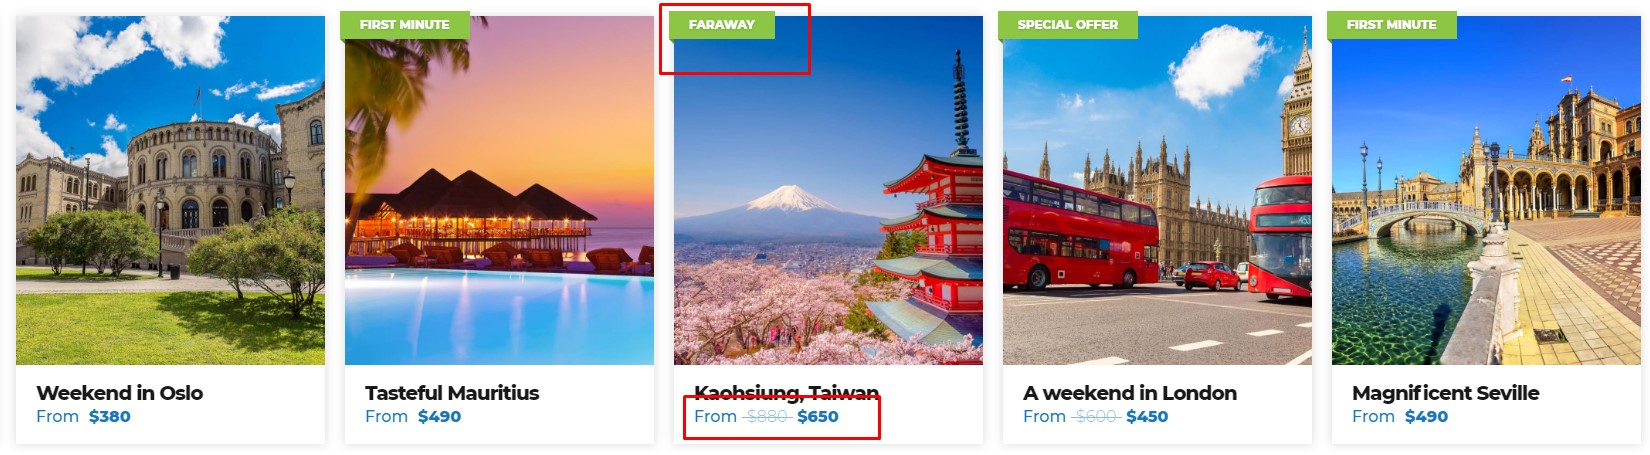 http://documentation.bold-themes.com/travelicious/wp-content/uploads/sites/37/2018/10/tour-old-price-1.jpg